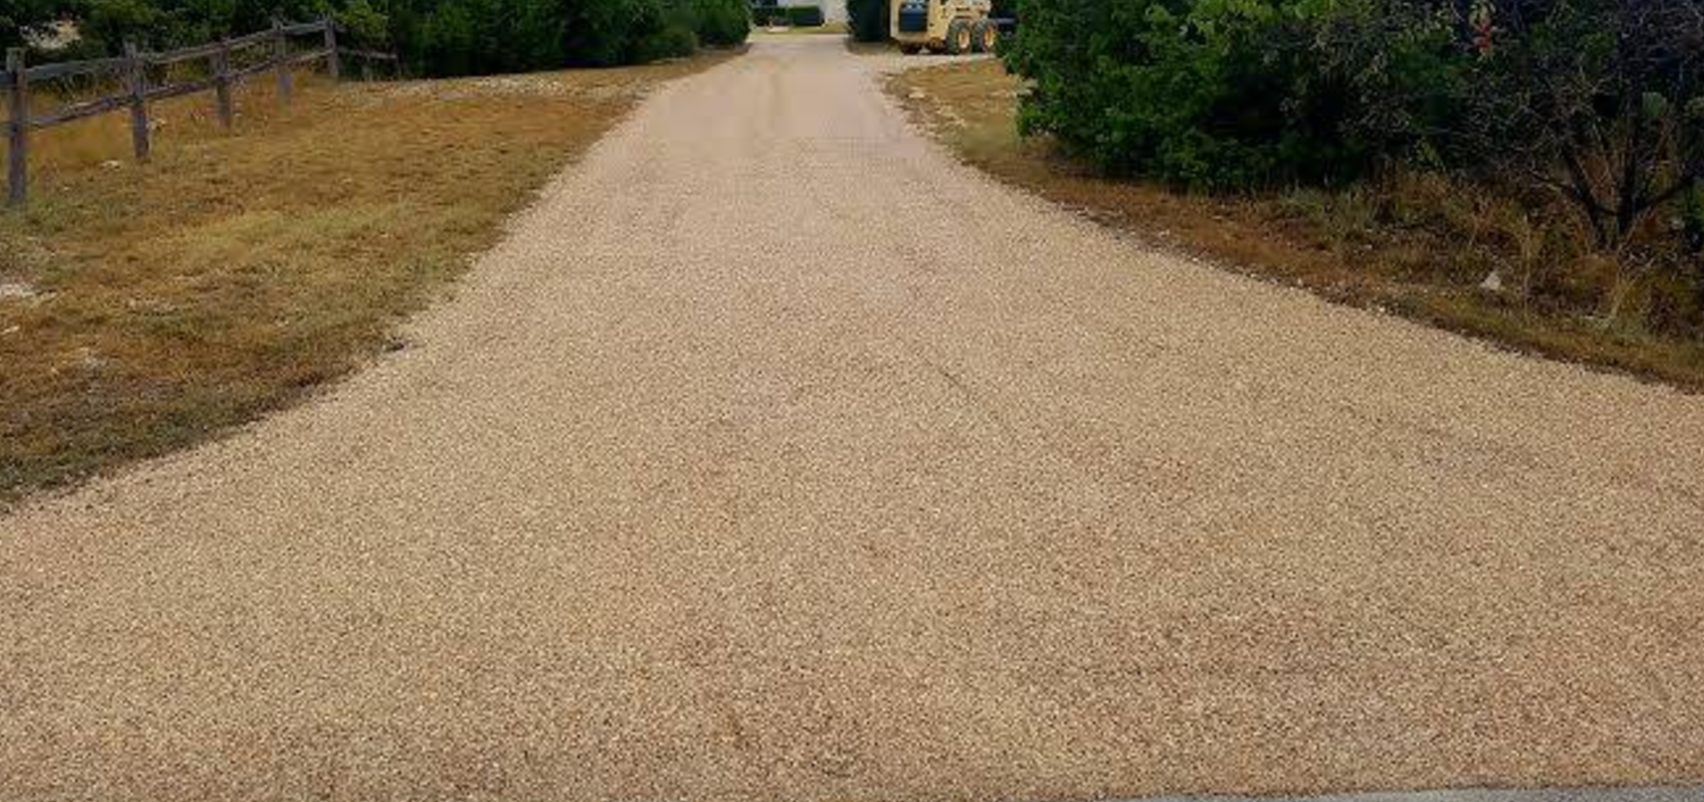 Chip Sealing A Driveway In Georgetown Texas Chip Seal Tar And Gravel Paving Gravel Pave Paving Asphalt Pavement